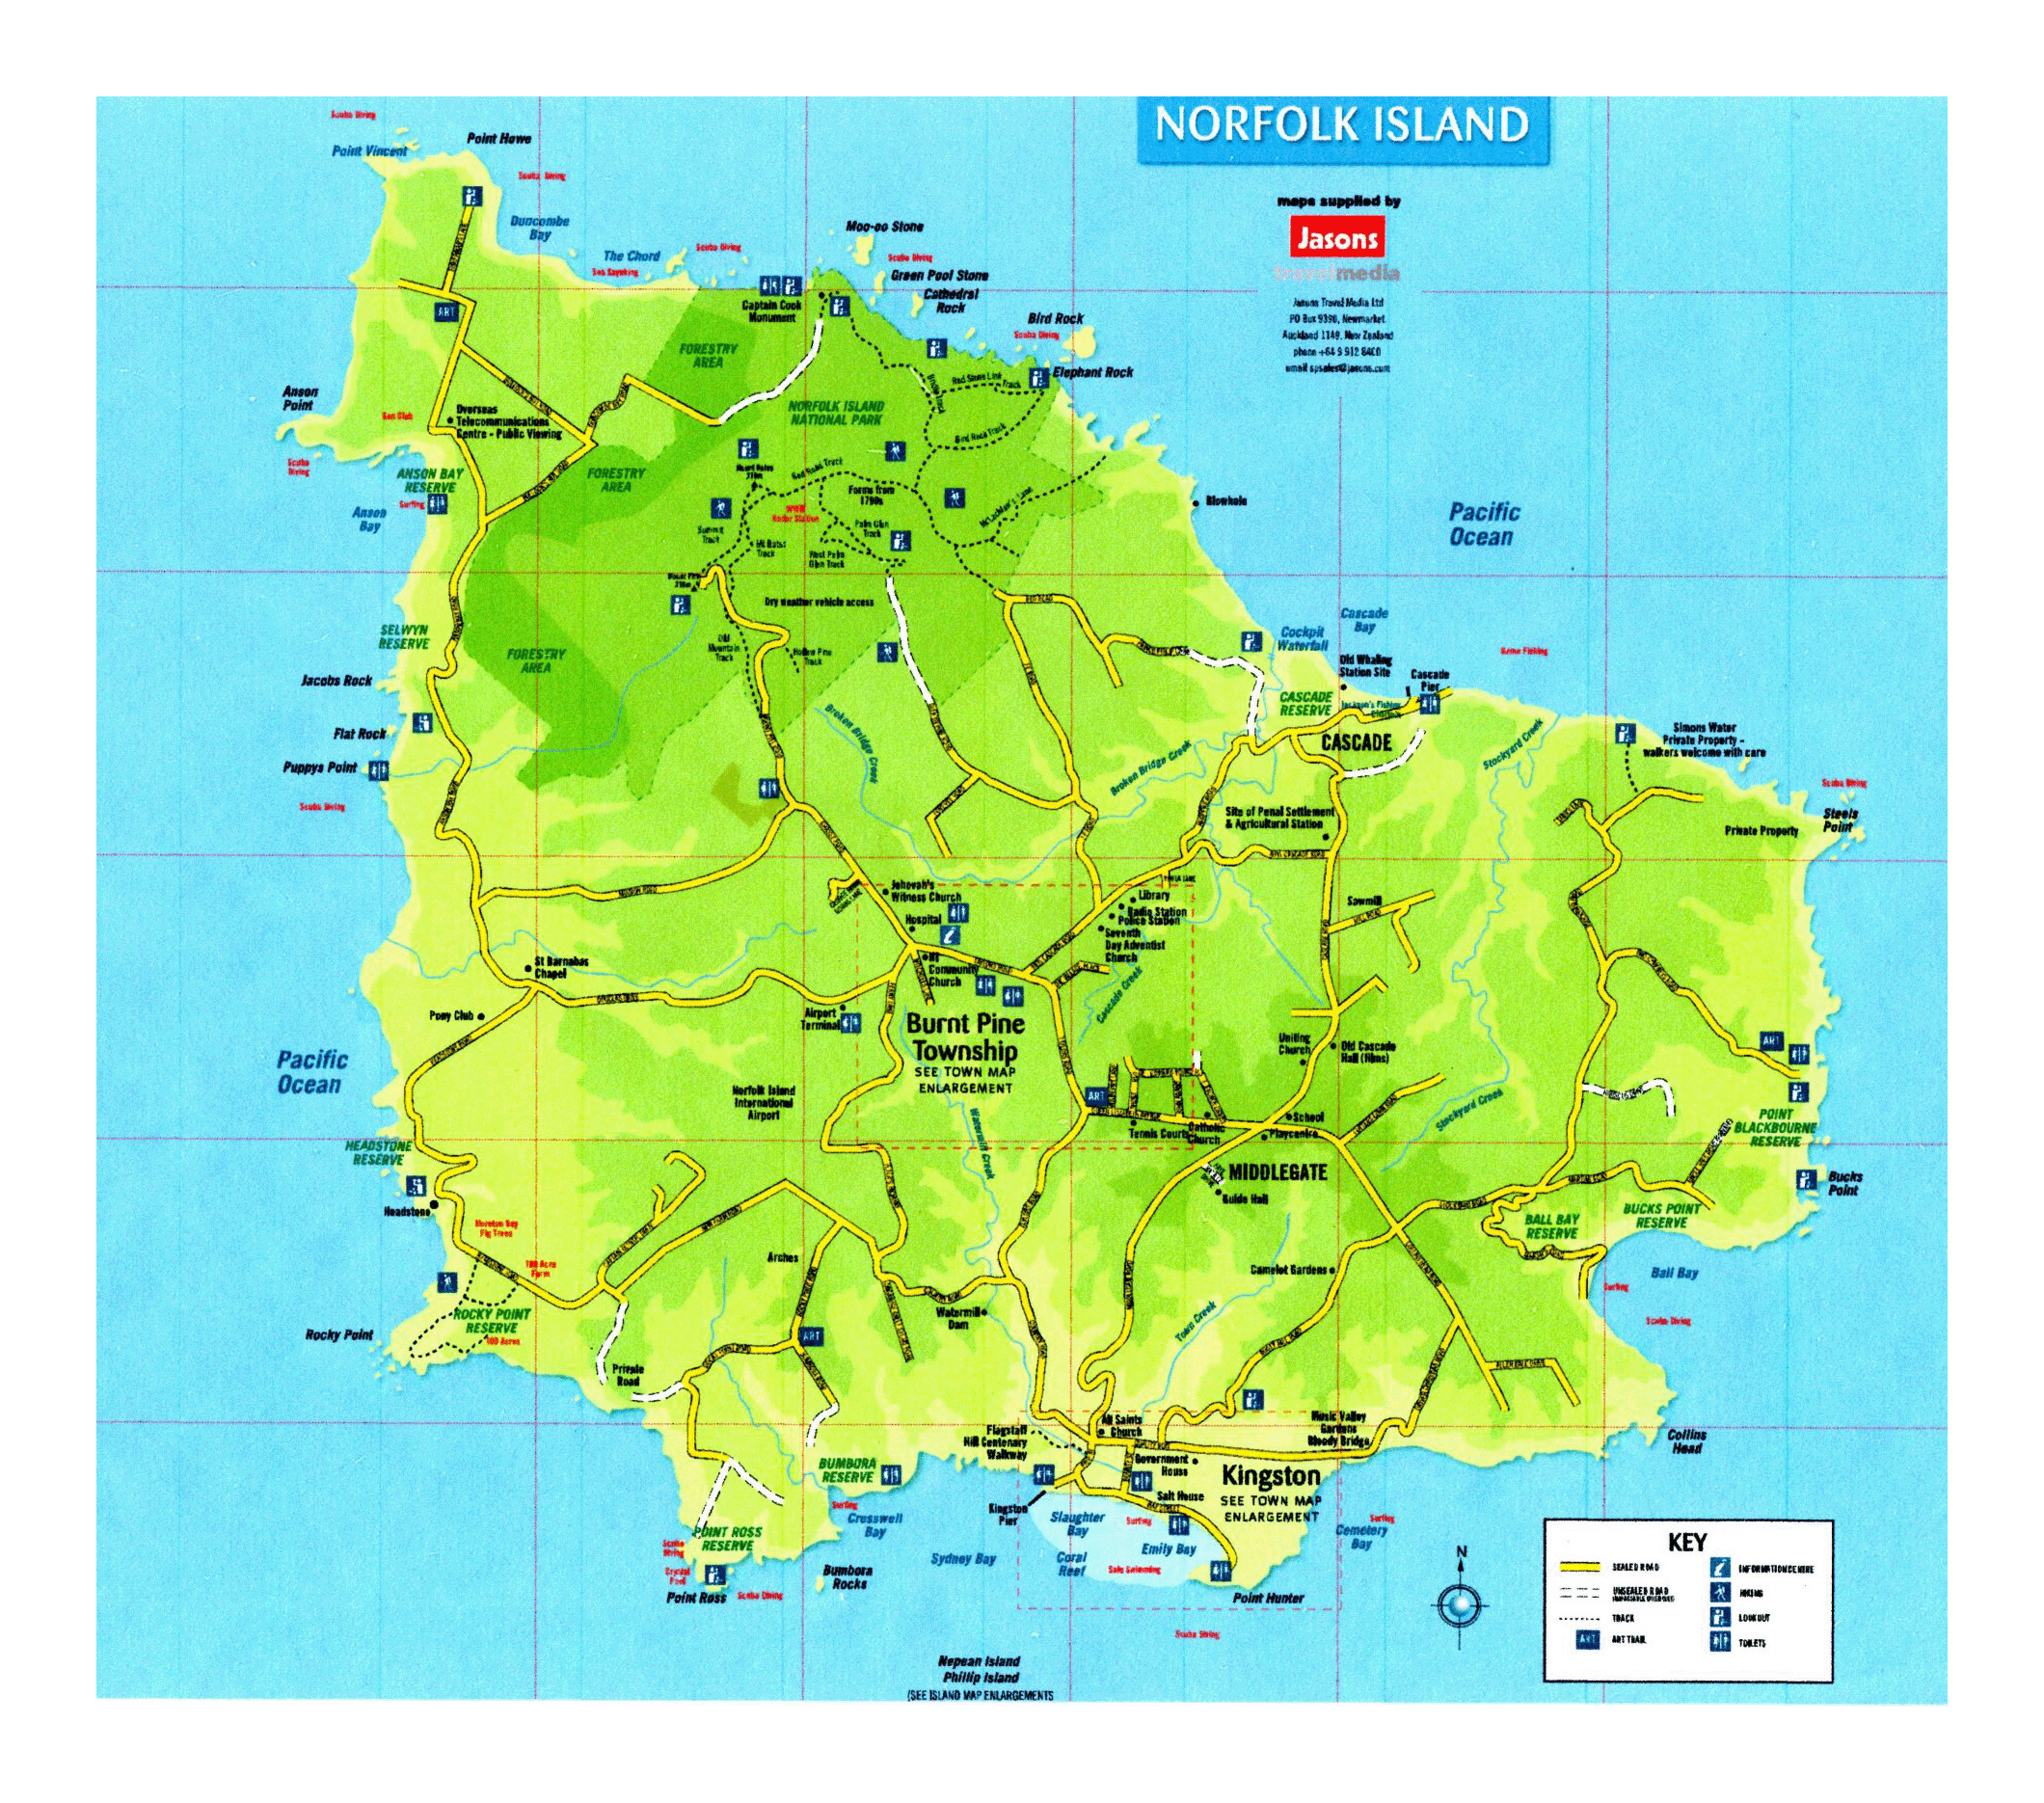 Large tourist map of Norfolk Island Norfolk Island Oceania